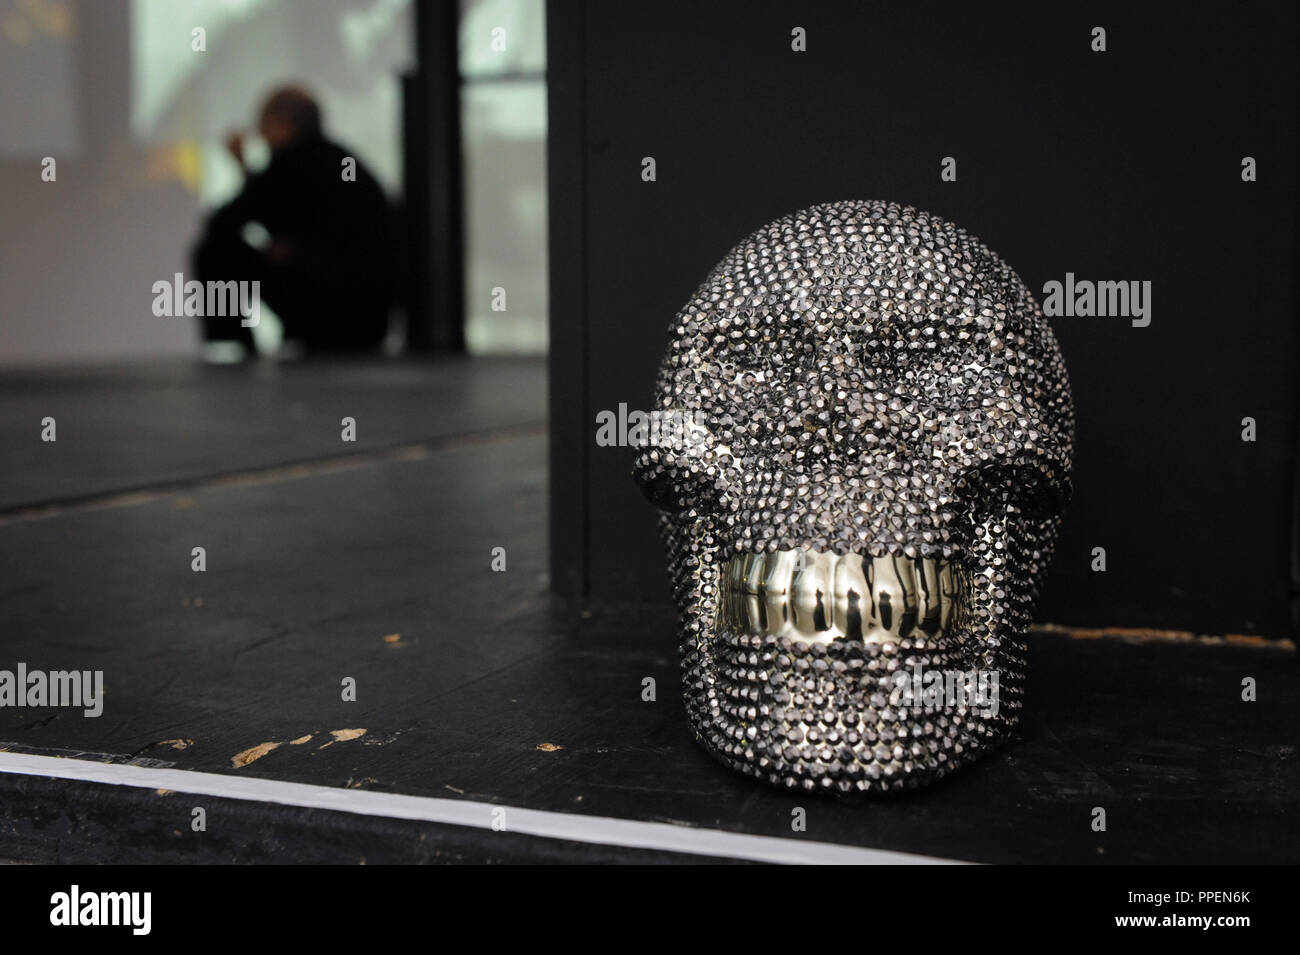 Skull with rhinestones in the current Hamlet exhibition at the Theatre Museum Munich in the Galeriestrasse 4a. - Stock Image